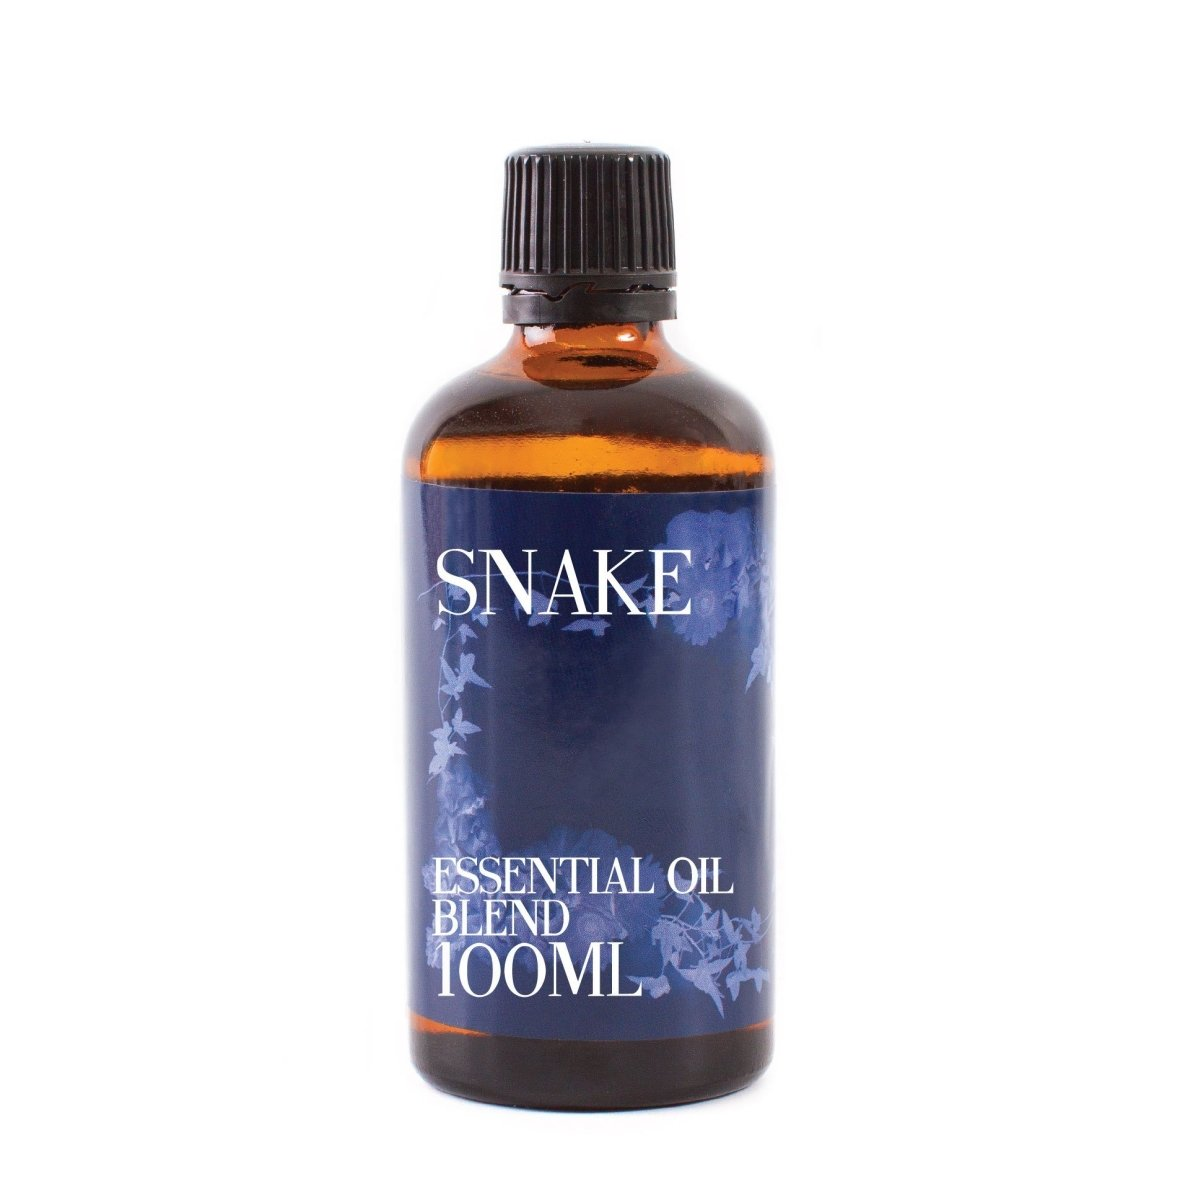 Snake - Chinese Zodiac - Essential Oil Blend - Mystic Moments UK